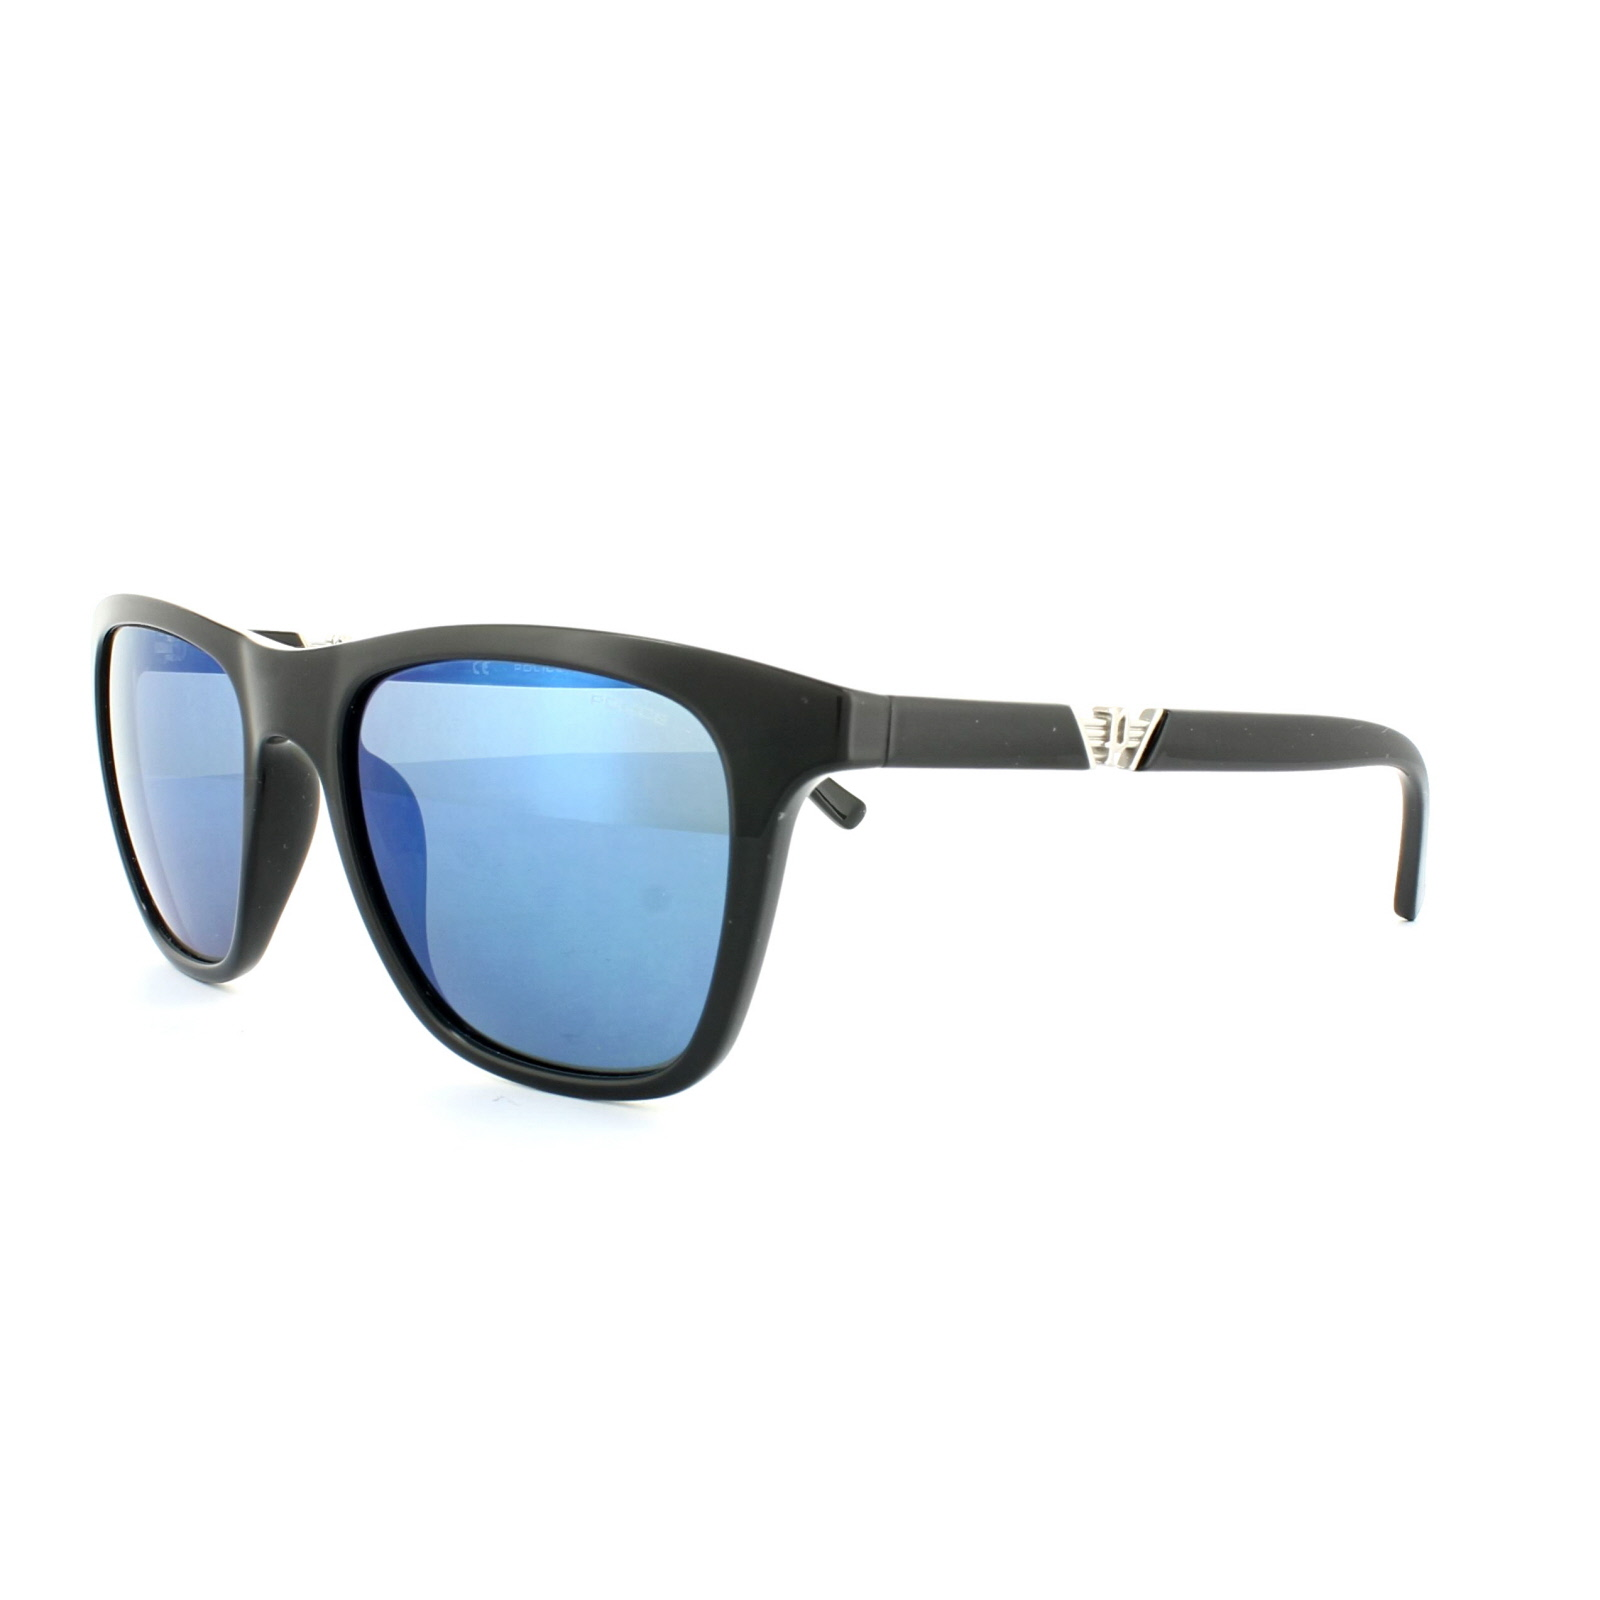 7f1c6647db34c Sentinel Police Sunglasses S1800M Drift 3 Z42B Shiny Black Blue Mirror